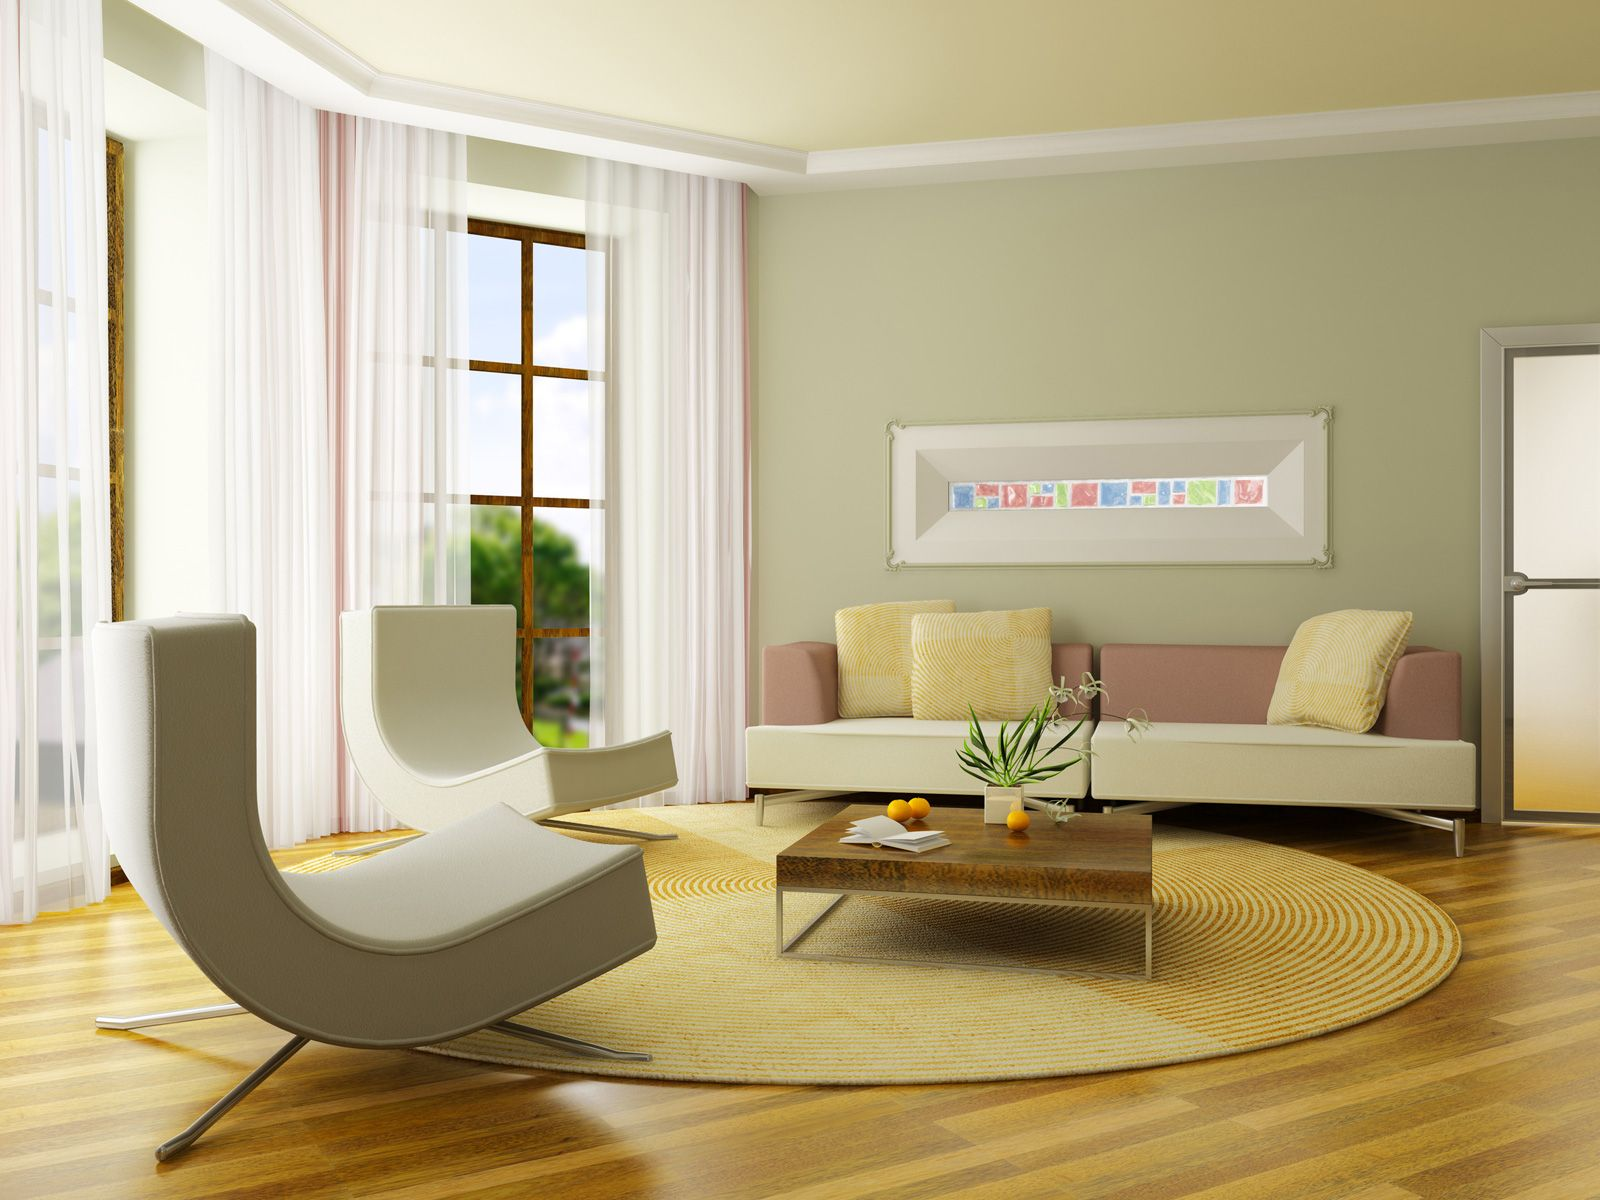 modern living room colors paint traditional kitchen decoration - Green Paint Colors For Living Room